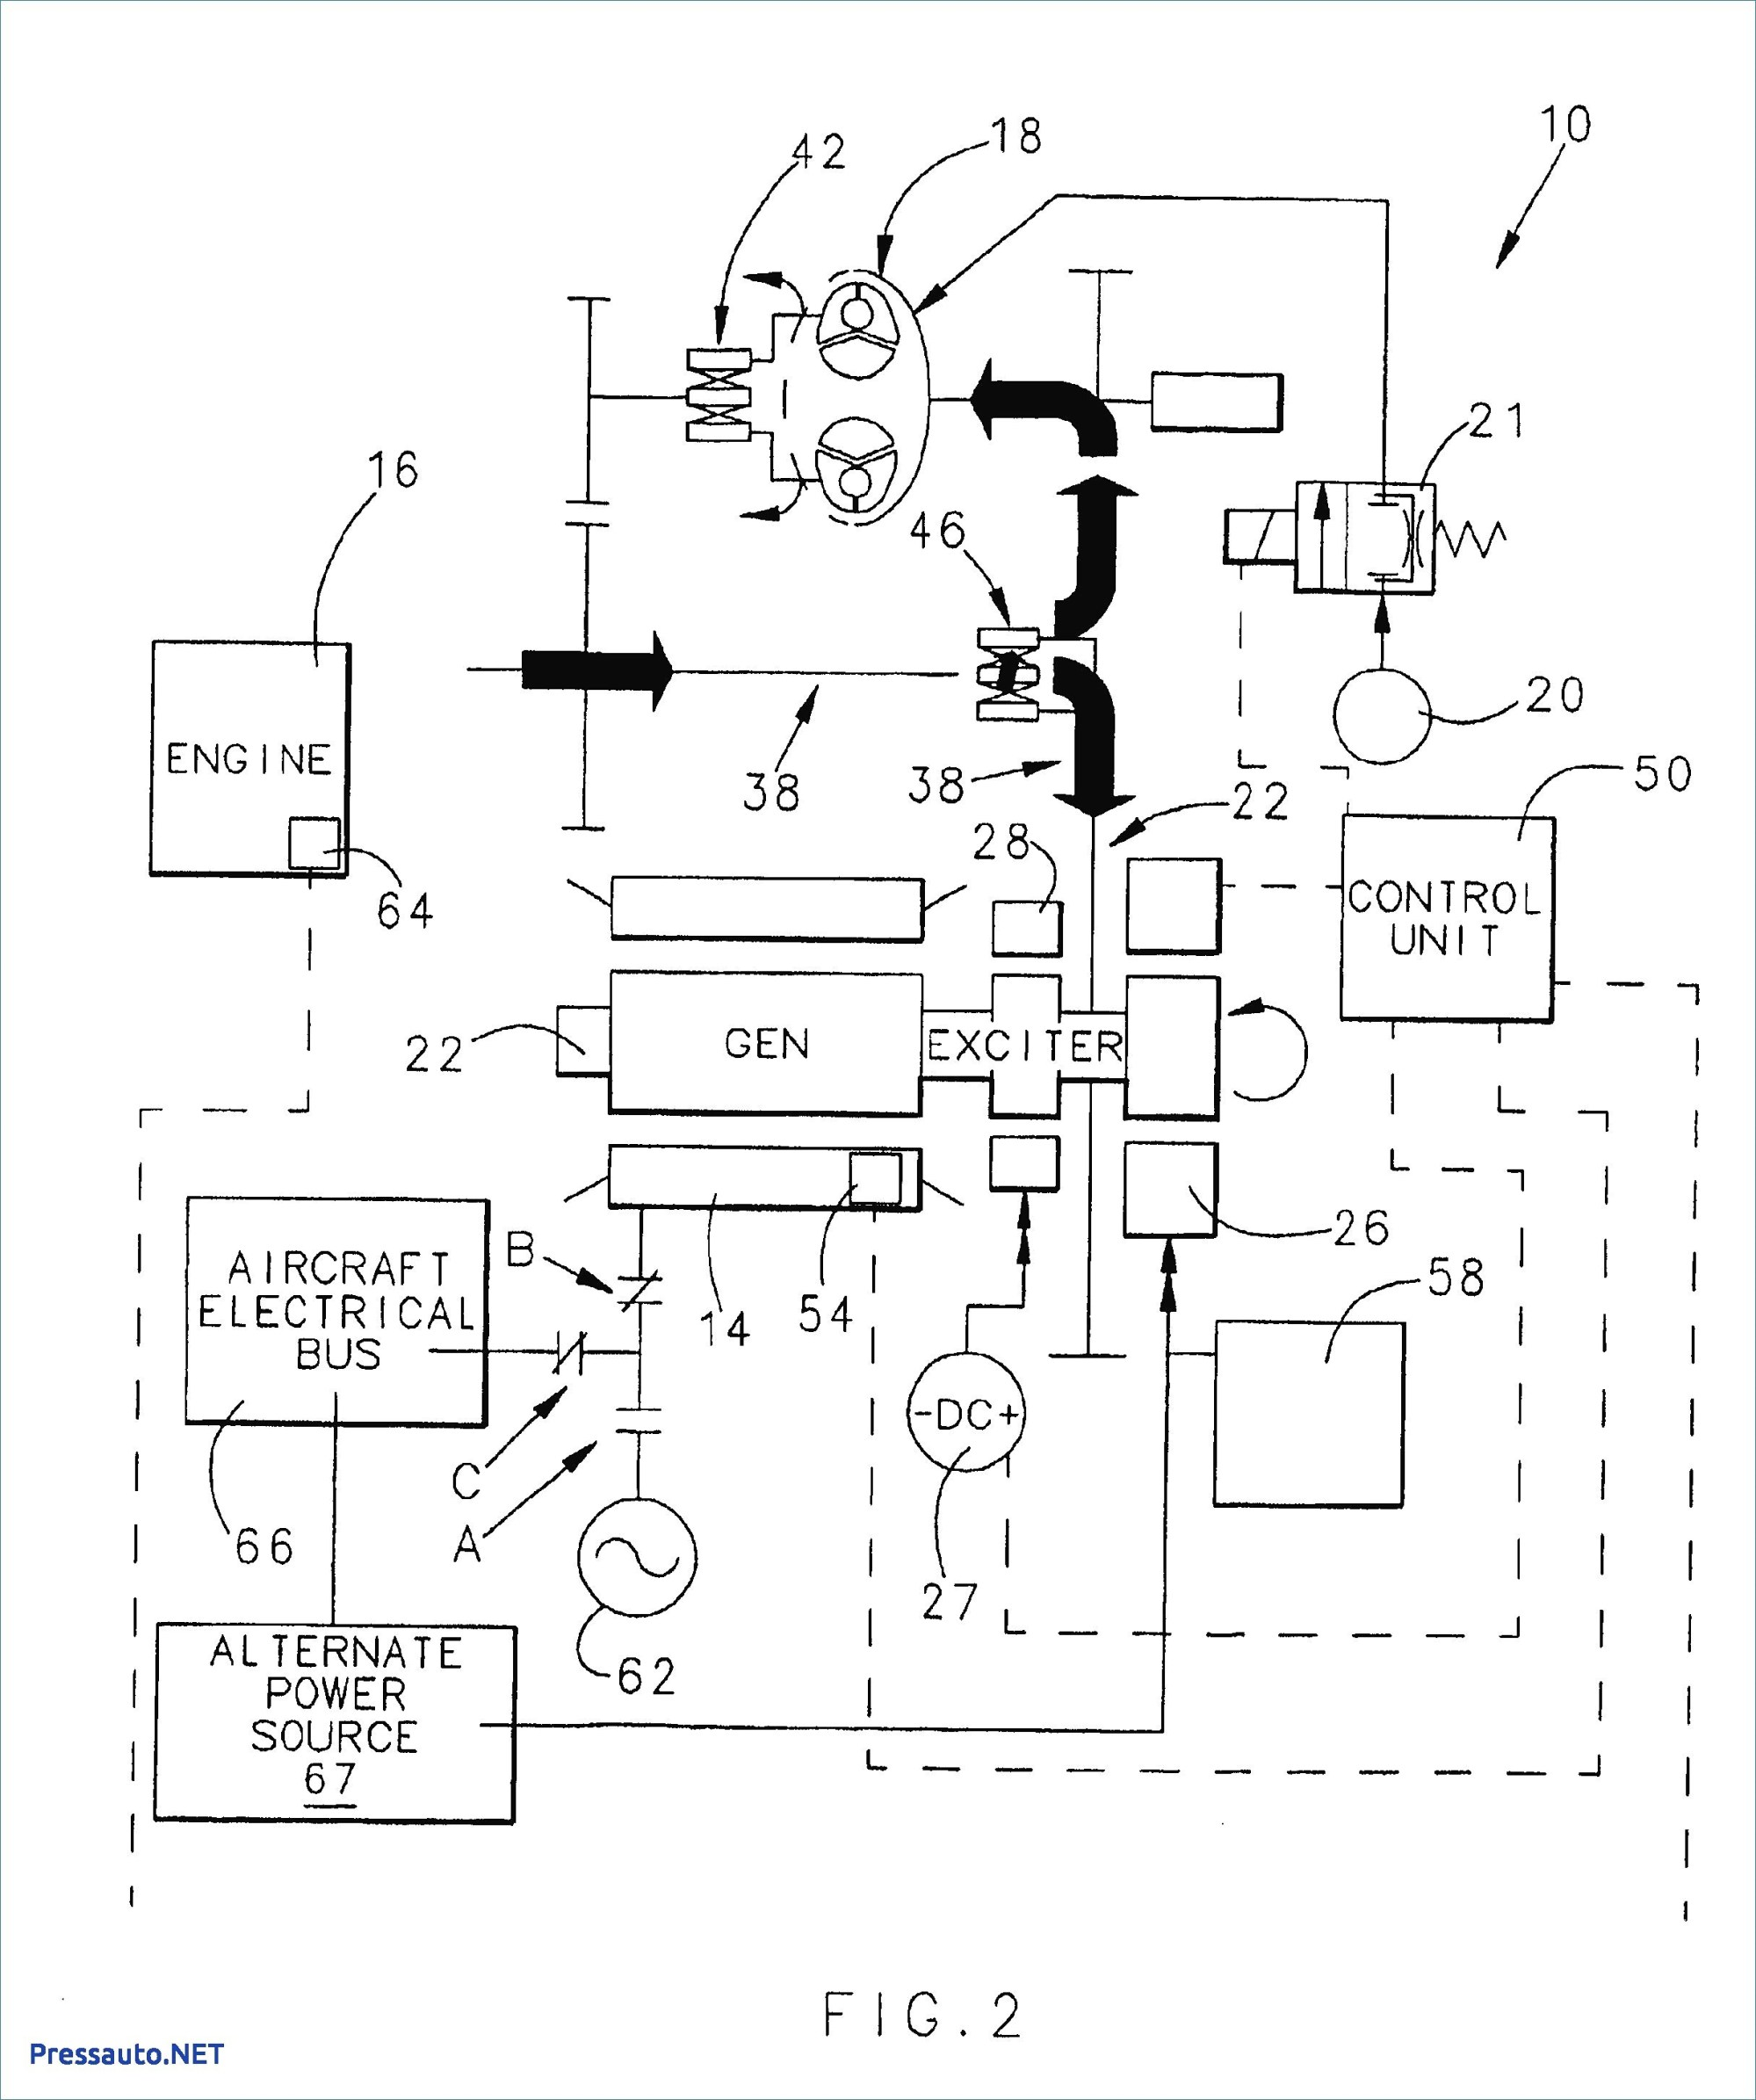 hight resolution of delco 09383075 wiring diagram wiring library delco radio wiring schematic acdelco stereo wiring diagram model 09375925